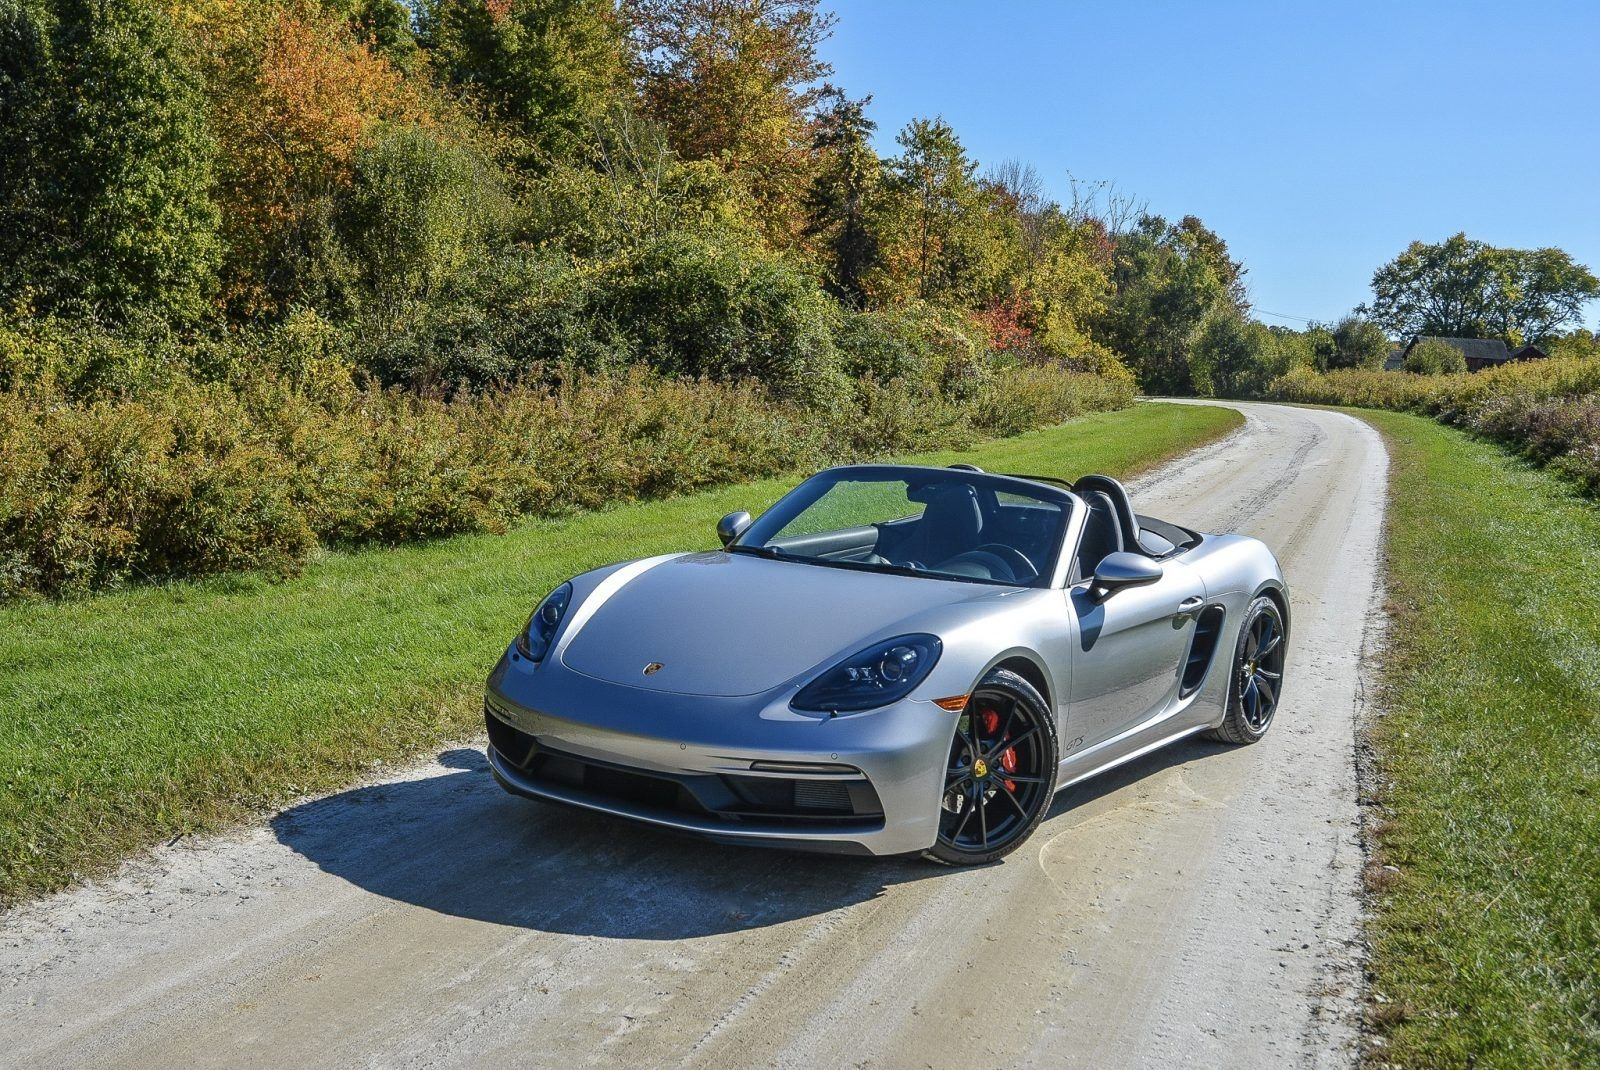 2019 Porsche 718 Boxster GTS - Manual 9.9k miles Silver $ For Sale (picture 1 of 6)